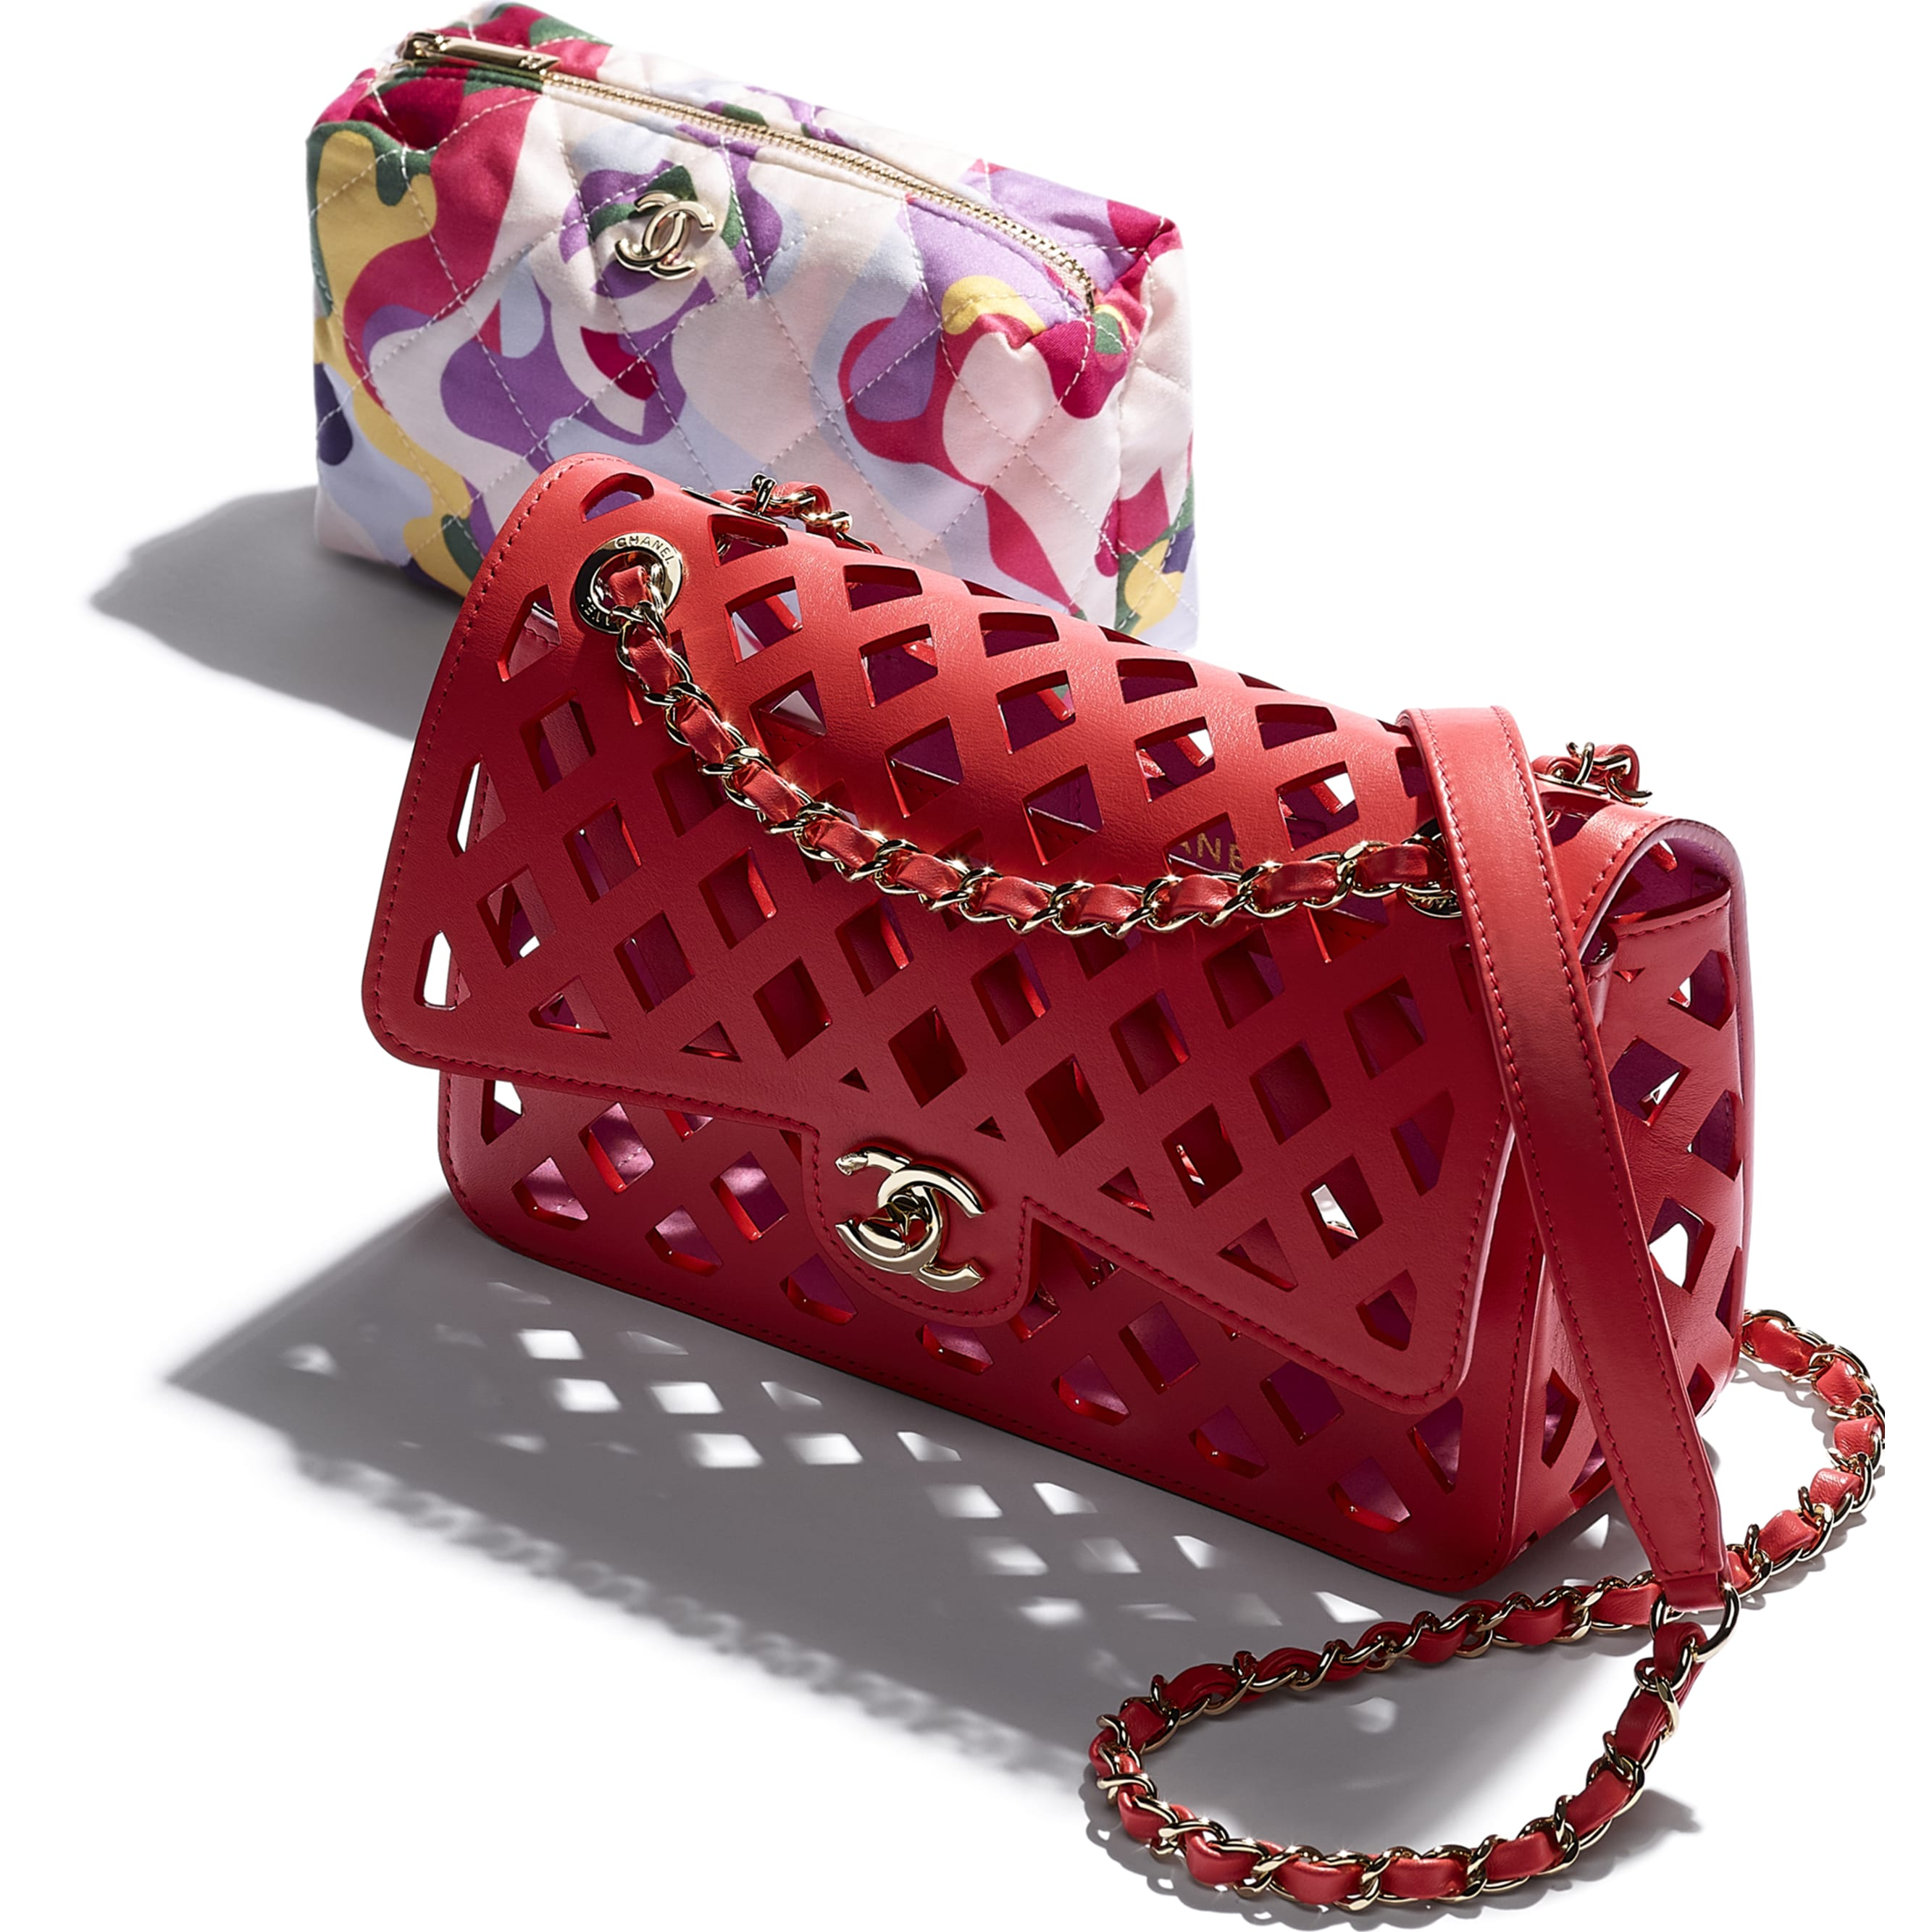 Flap Bag - Red - Perforated Calfskin, Printed Fabric & Gold-Tone Metal - CHANEL - Extra view - see standard sized version